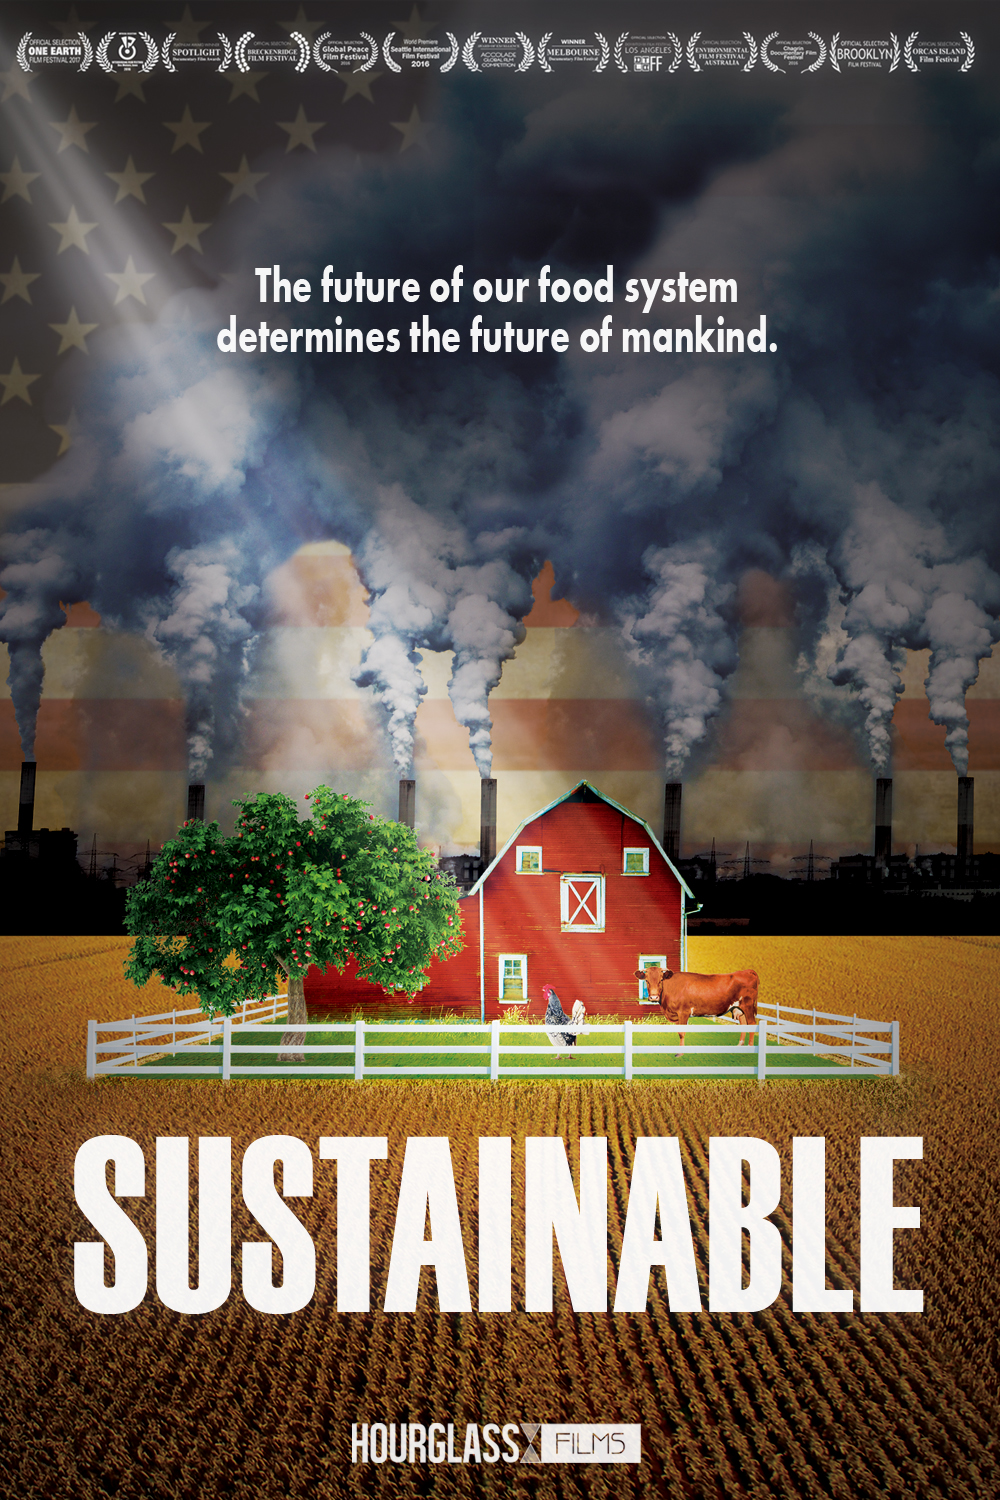 SustainablePoster_1000x1500.jpg